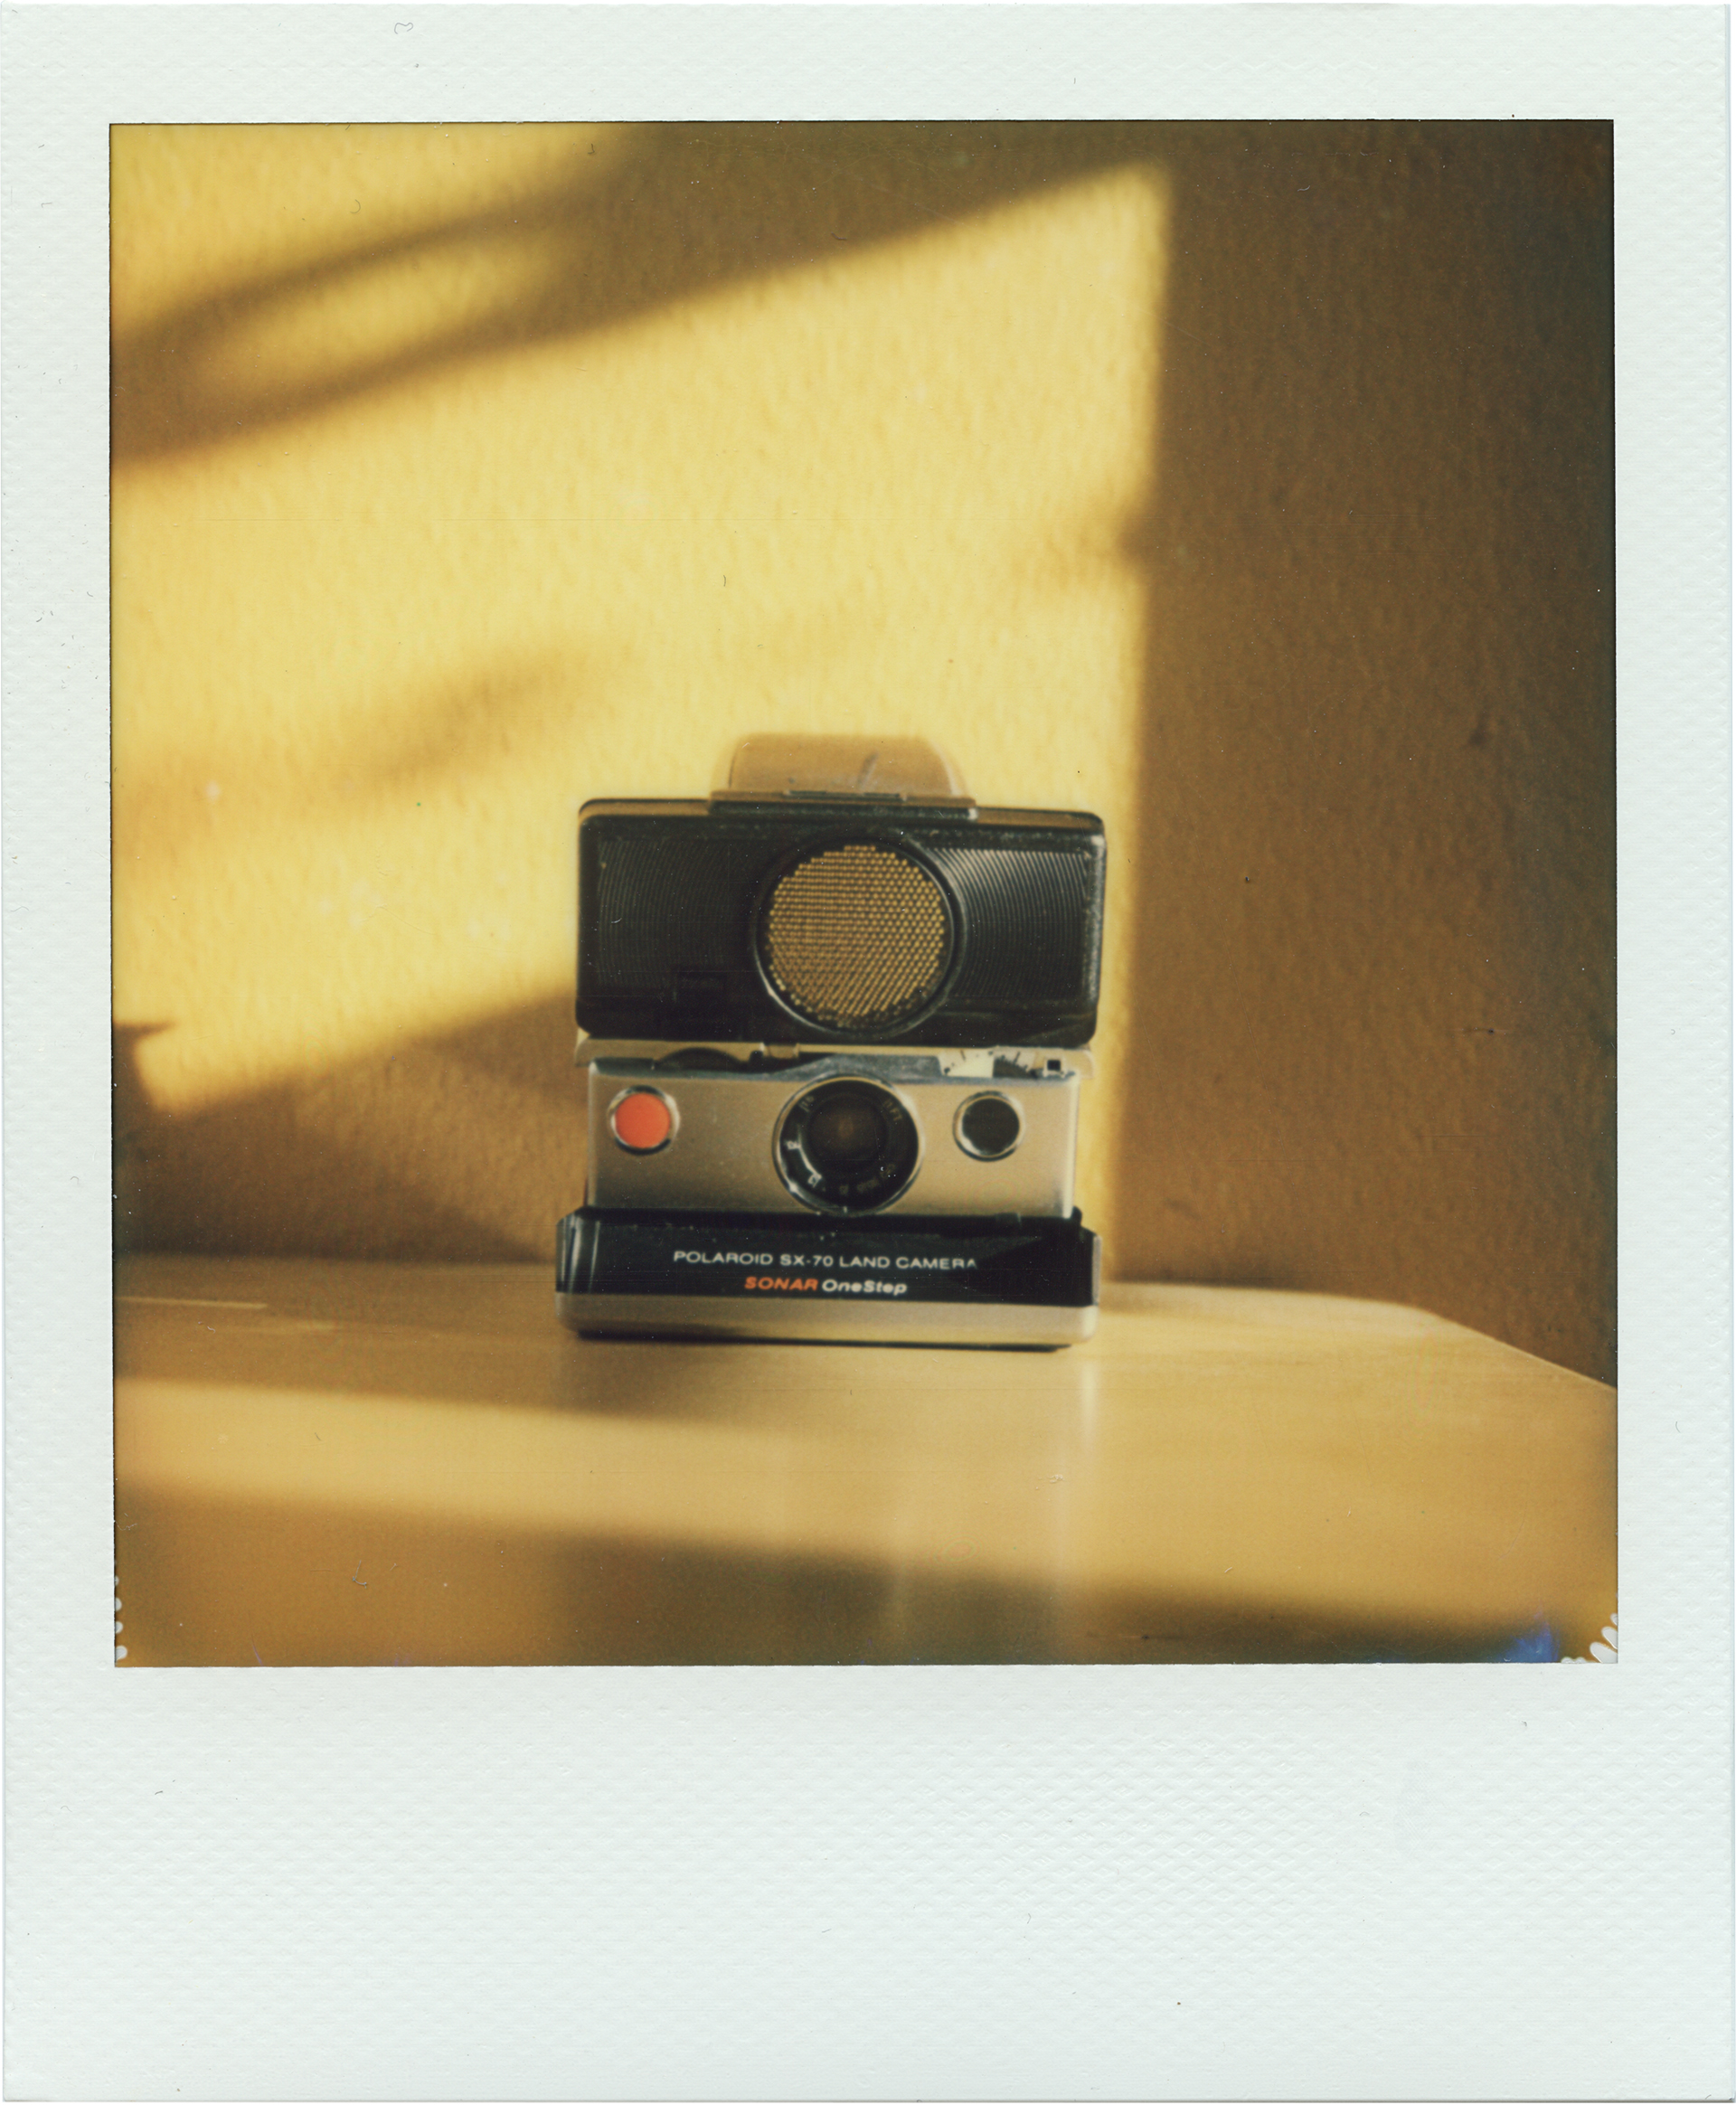 YellowRoom_SX70.jpg